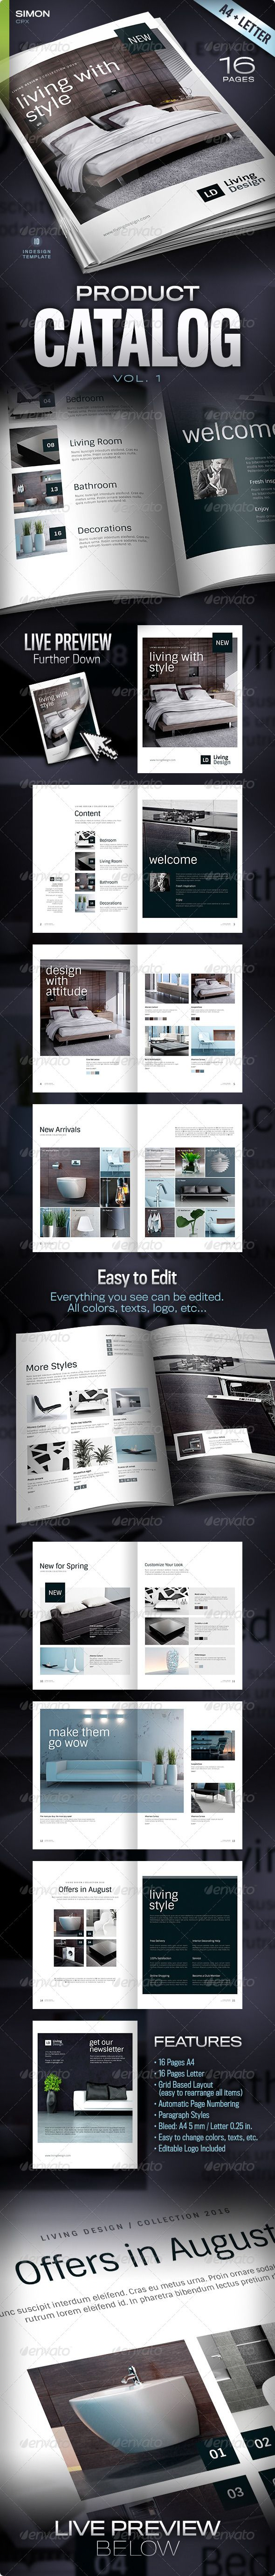 Professional, clean and modern 16 page InDesign product catalog or brochure template • Only available here ➝ http://graphicriver.net/item/product-catalog-vol-1/4638512?ref=pxcr